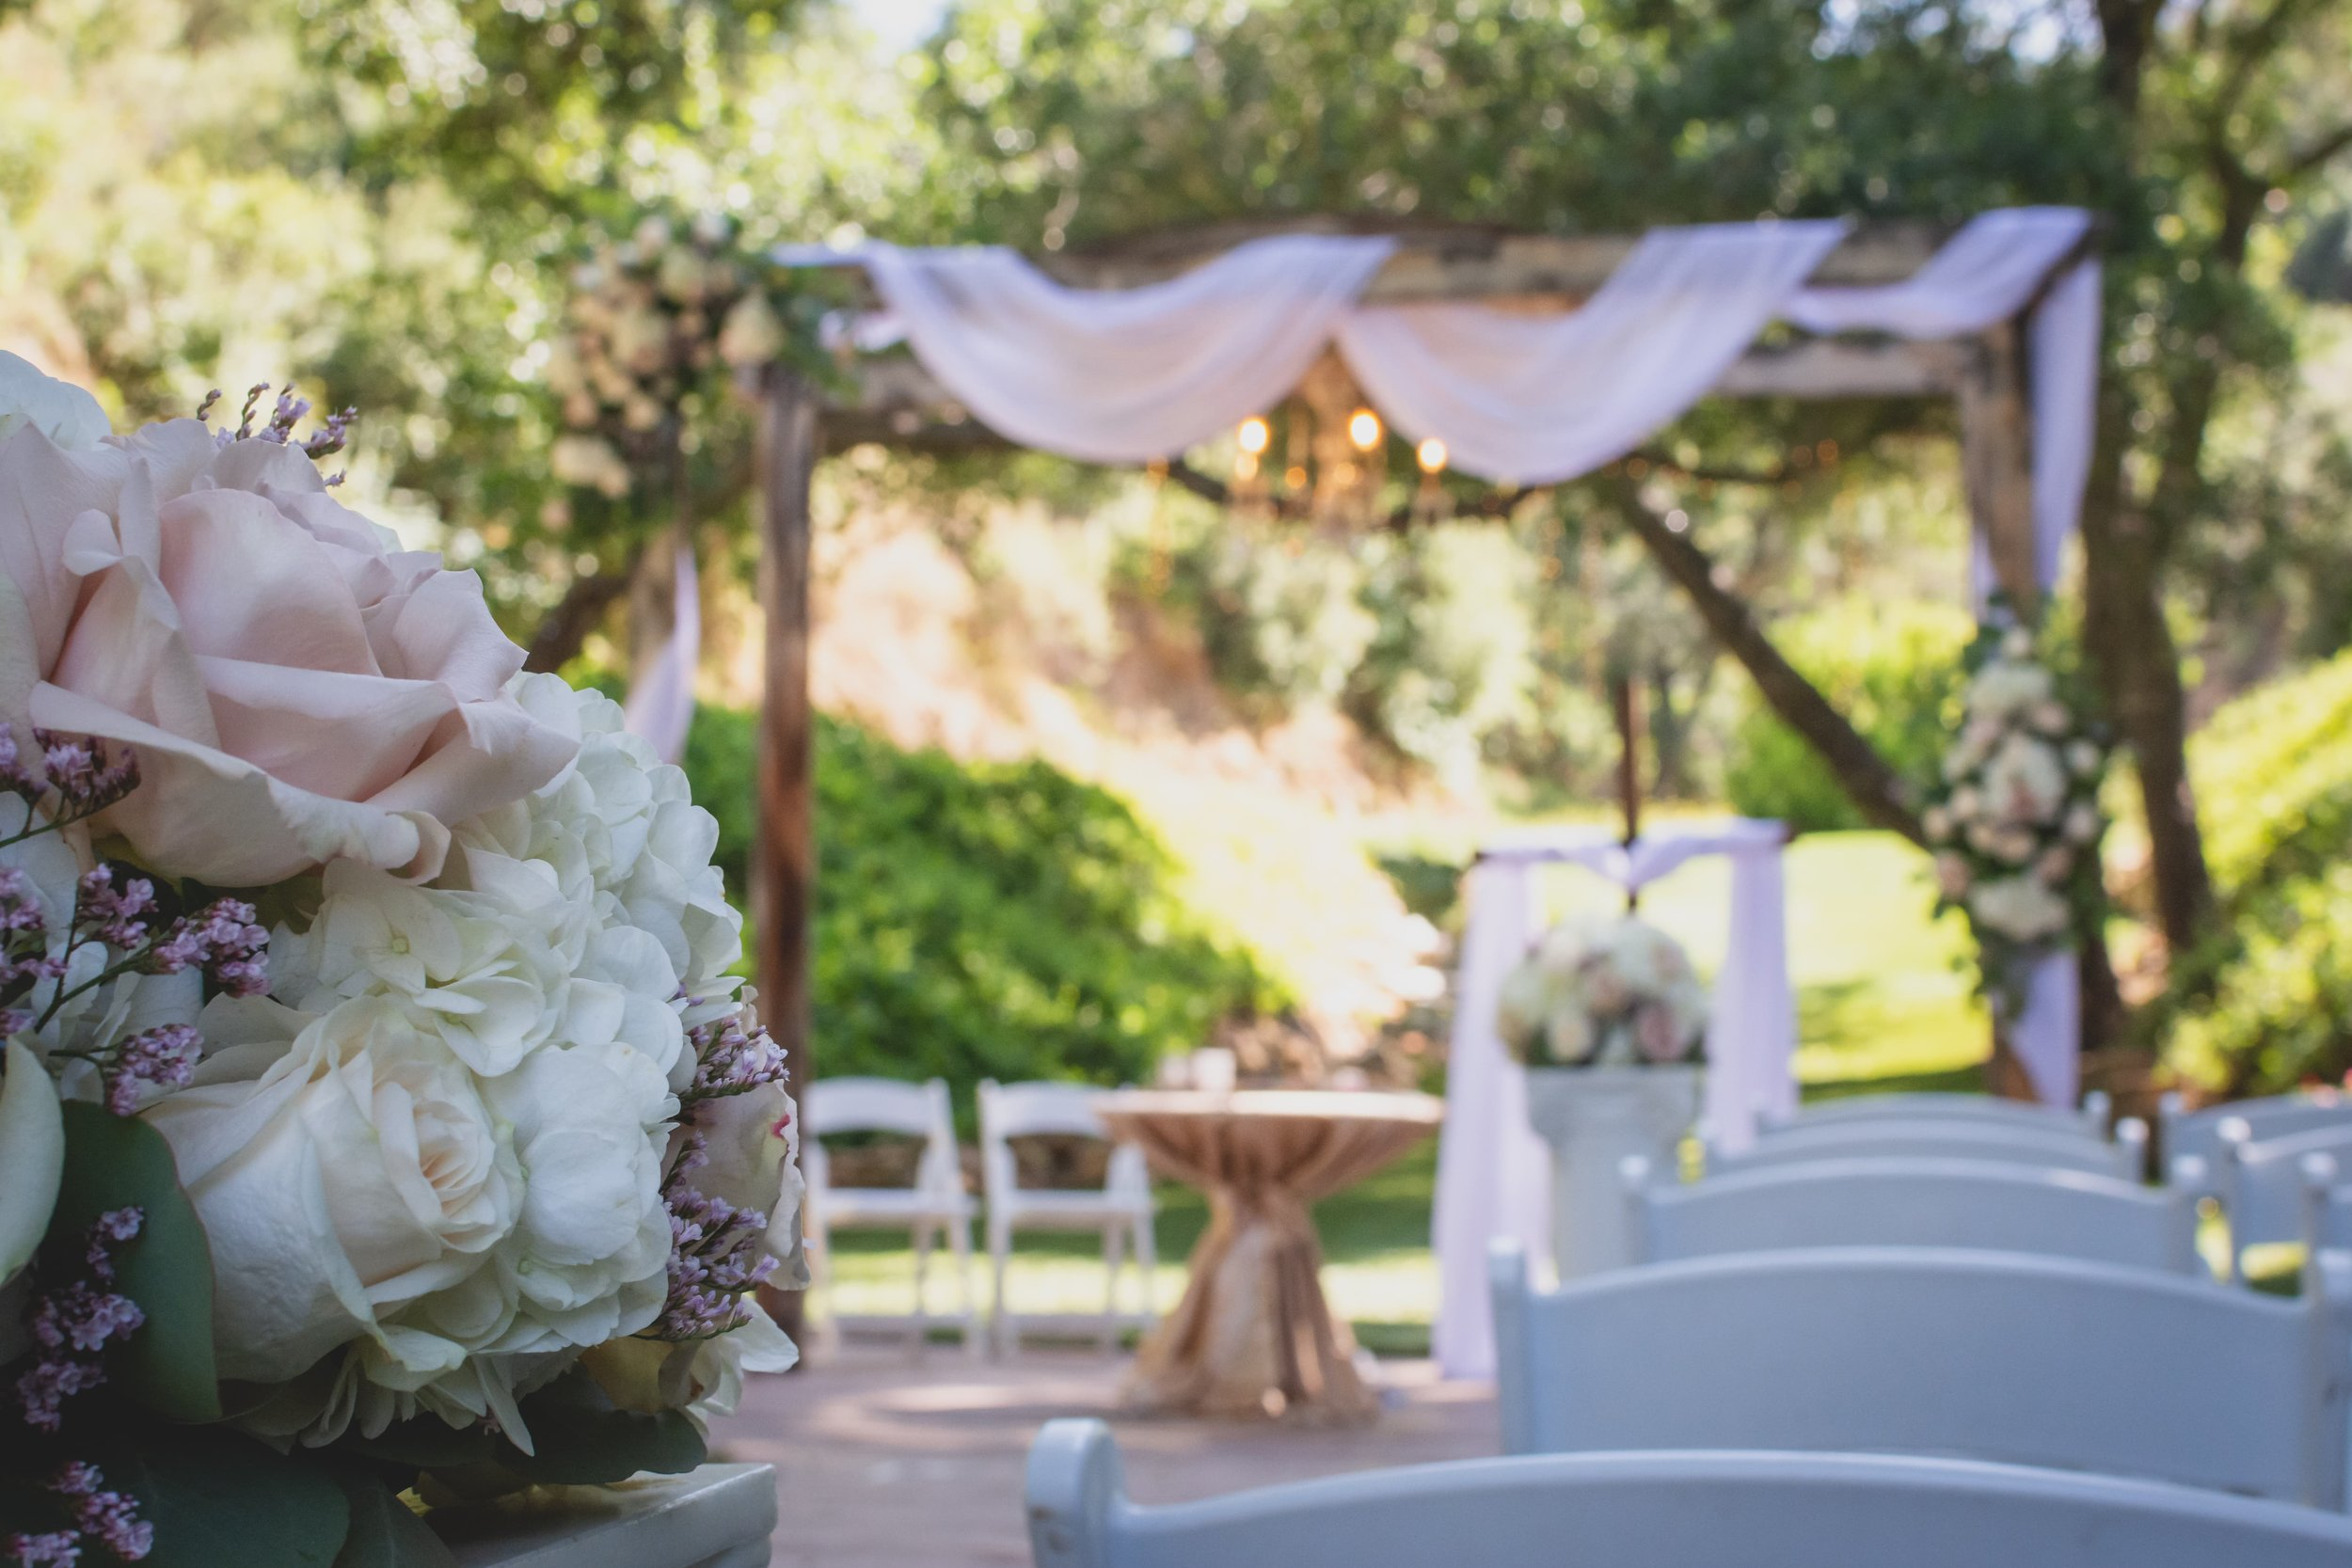 How To Keep Your Bridal Party Informed: A Guide To Keeping Everyone In The Loop - An arched ceremony altar decorated with flowers, greenery, and pink cloth.